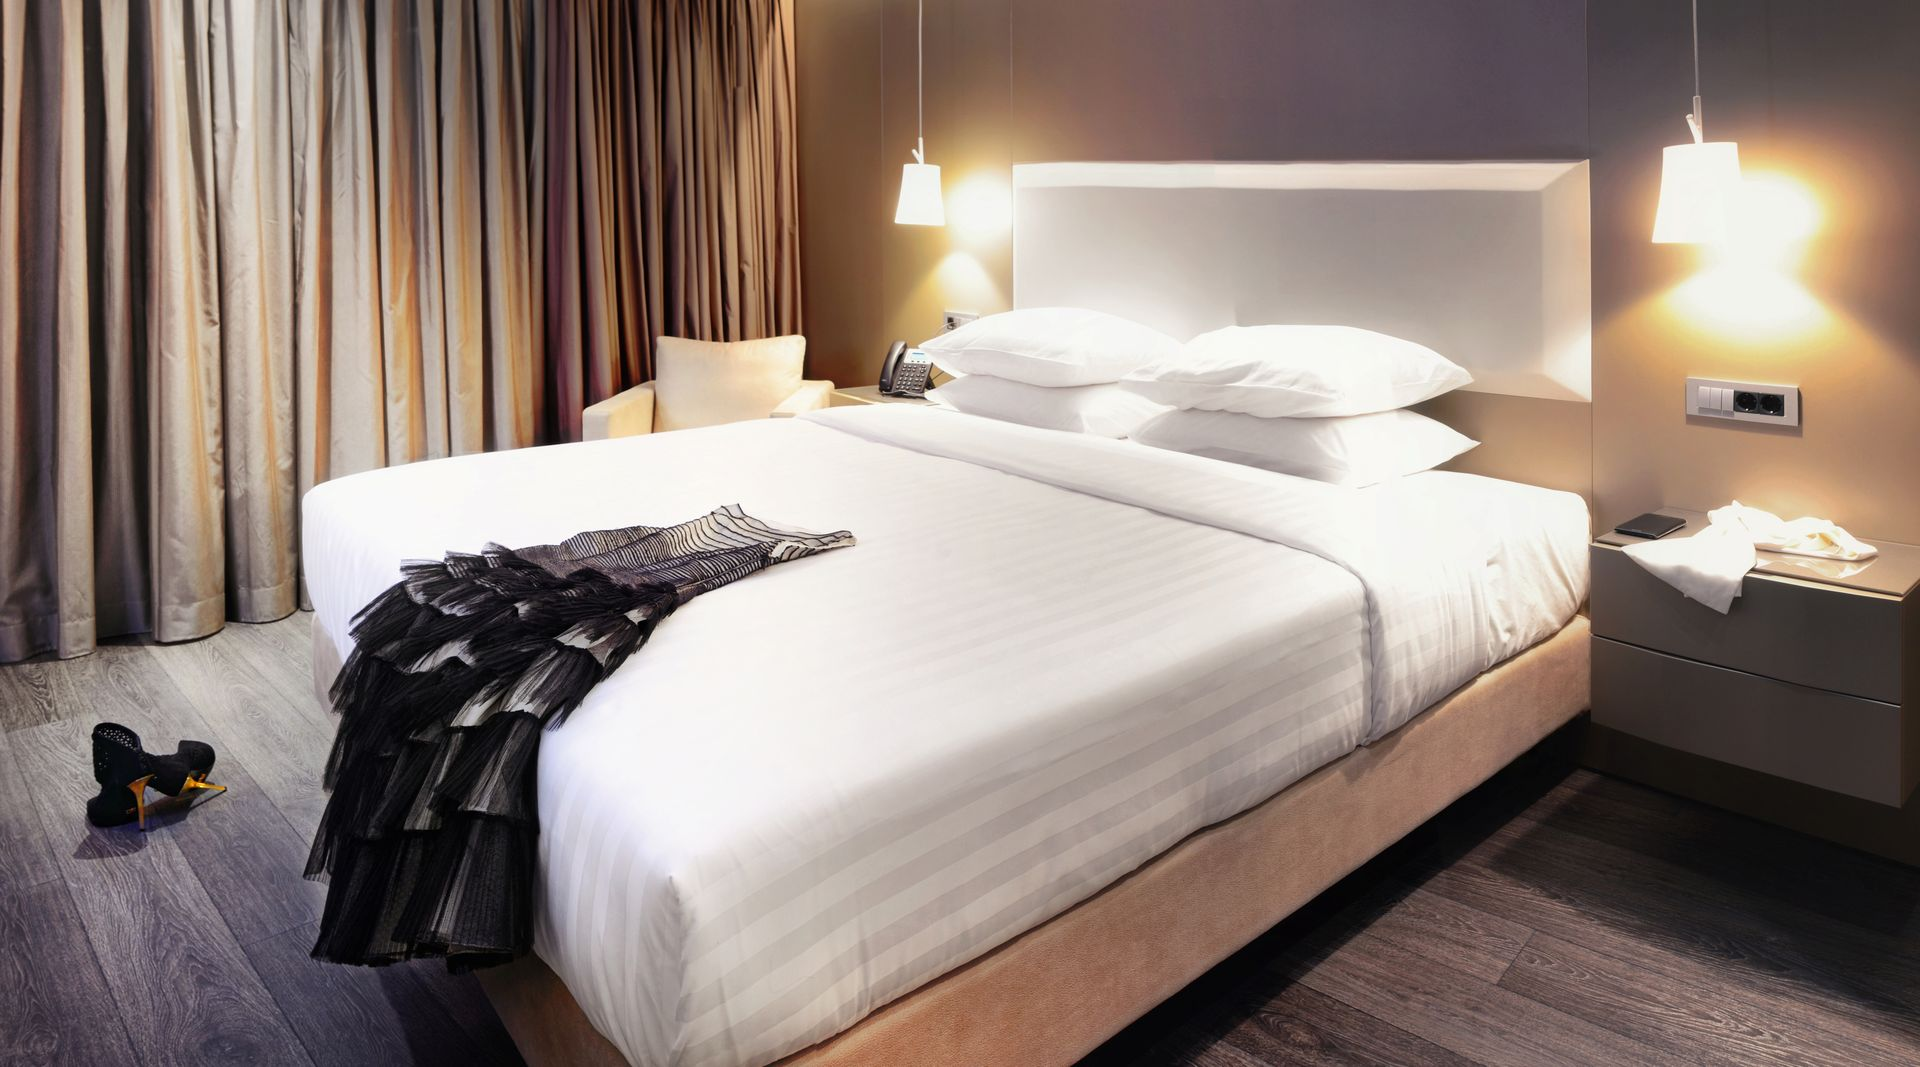 4* SAZ City Life Hotel Ioannina - Ιωάννινα ✦ 2 Ημέρες (1 Διανυκτέρευση) ✦ 2 Άτομα ΚΑΙ ένα Παιδί έως 2 ετών ✦ Πρωινό ✦ Καθαρά Δευτέρα (08/03/2019 έως 11/03/2019) ΚΑΙ 25η Μαρτίου (22/03/2019 έως 25/03/2019) ✦ Free WiFi!